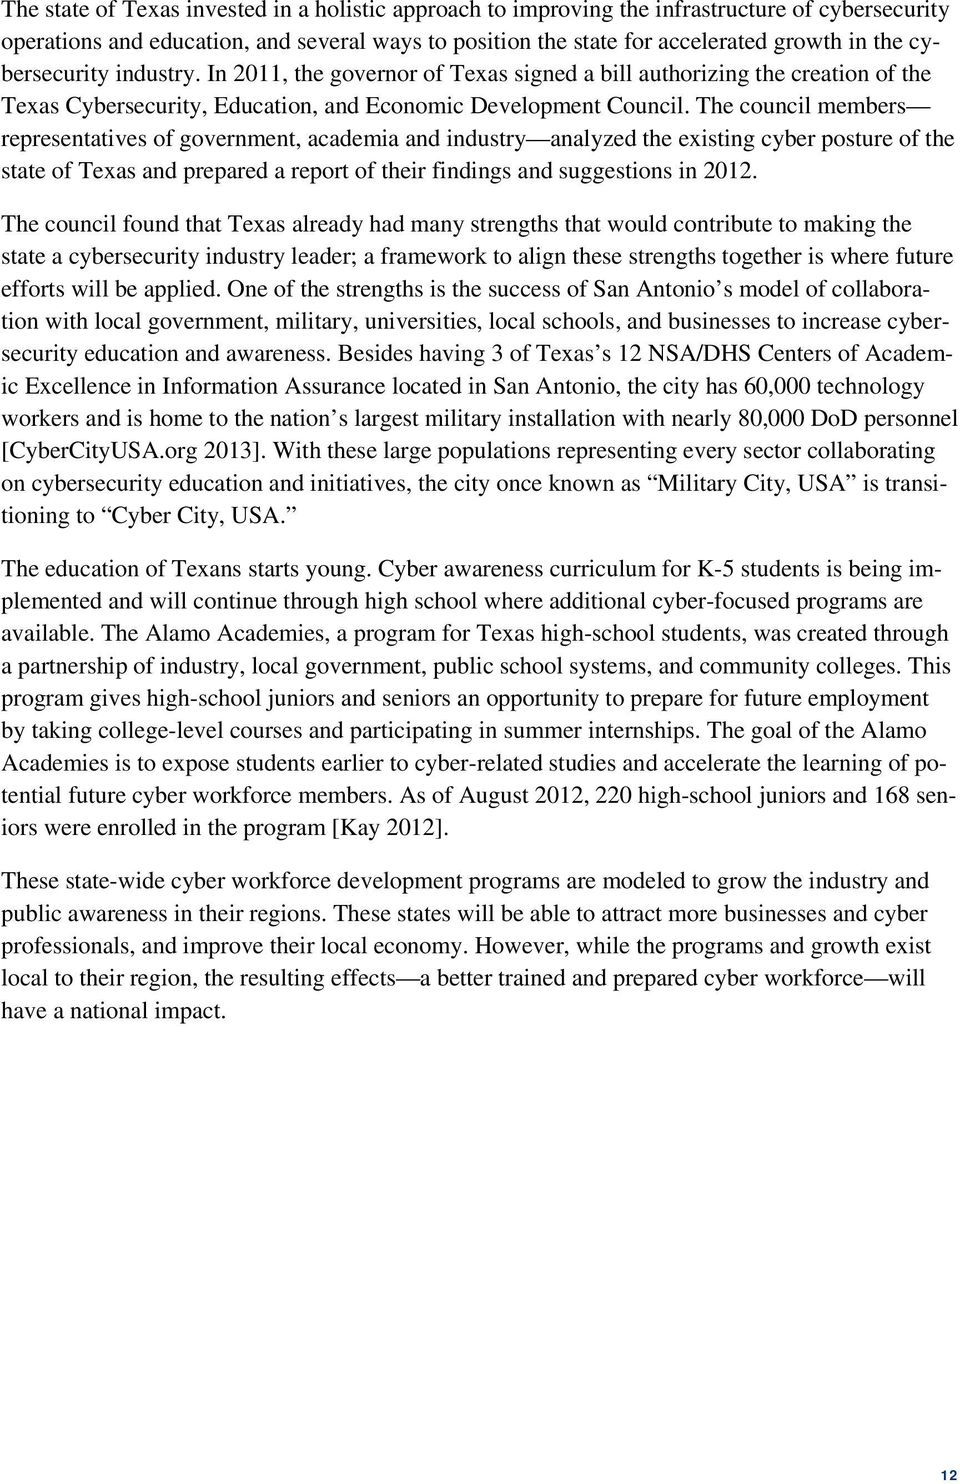 The council members representatives of government, academia and industry analyzed the existing cyber posture of the state of Texas and prepared a report of their findings and suggestions in 2012.